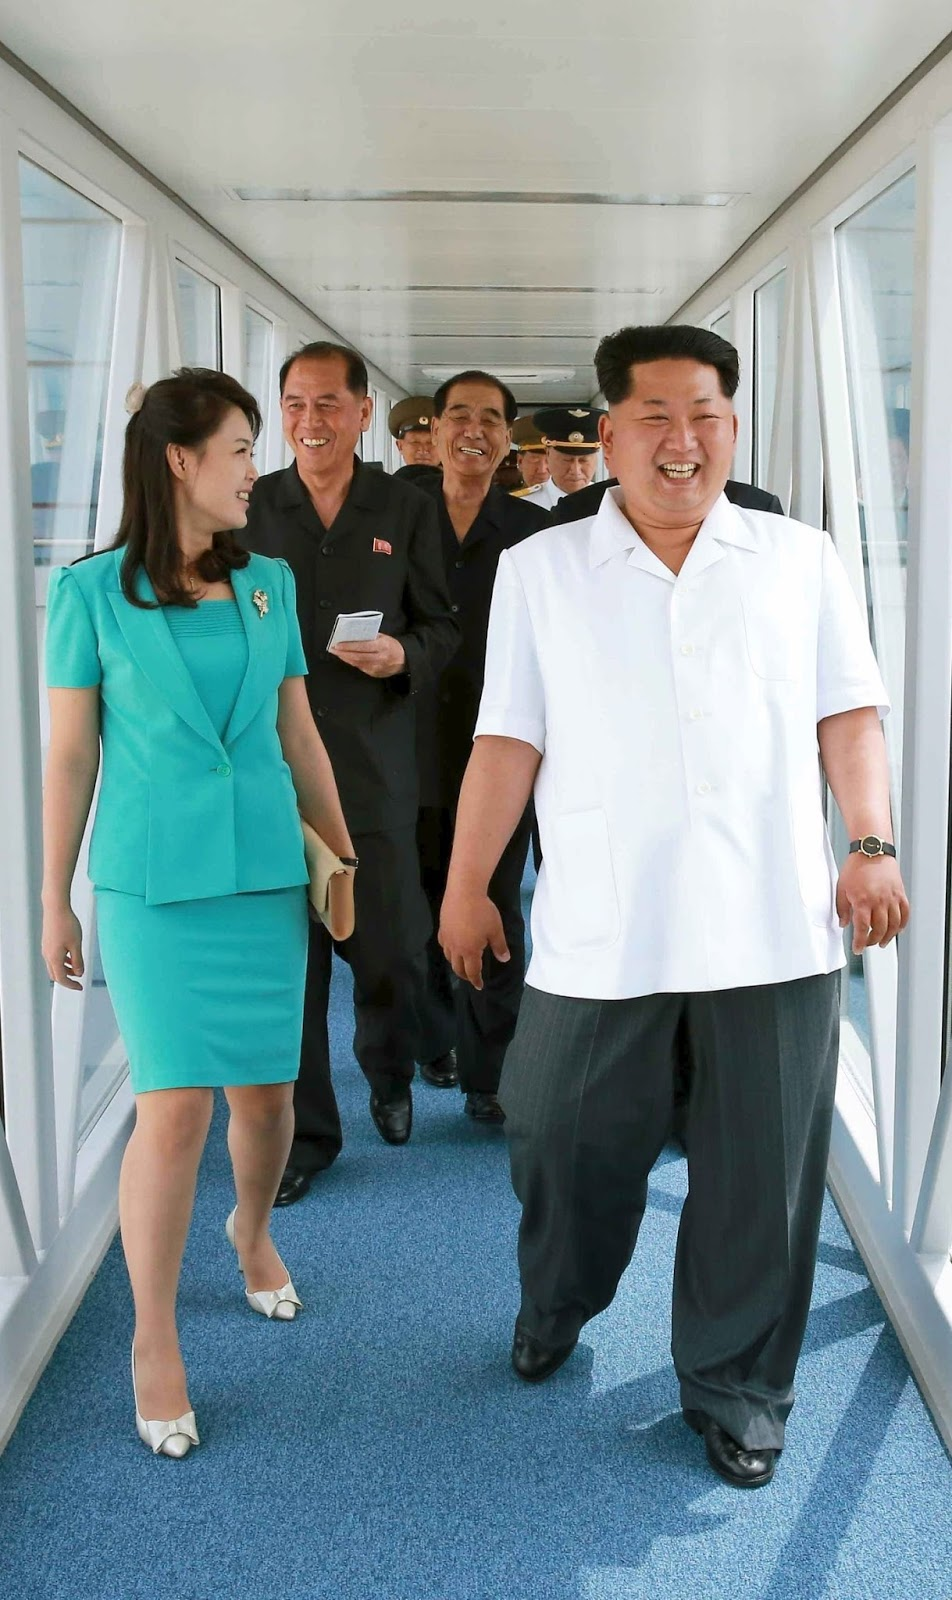 North Korea Kim Jong Un and his wife at the new international airport in Pyongyang.